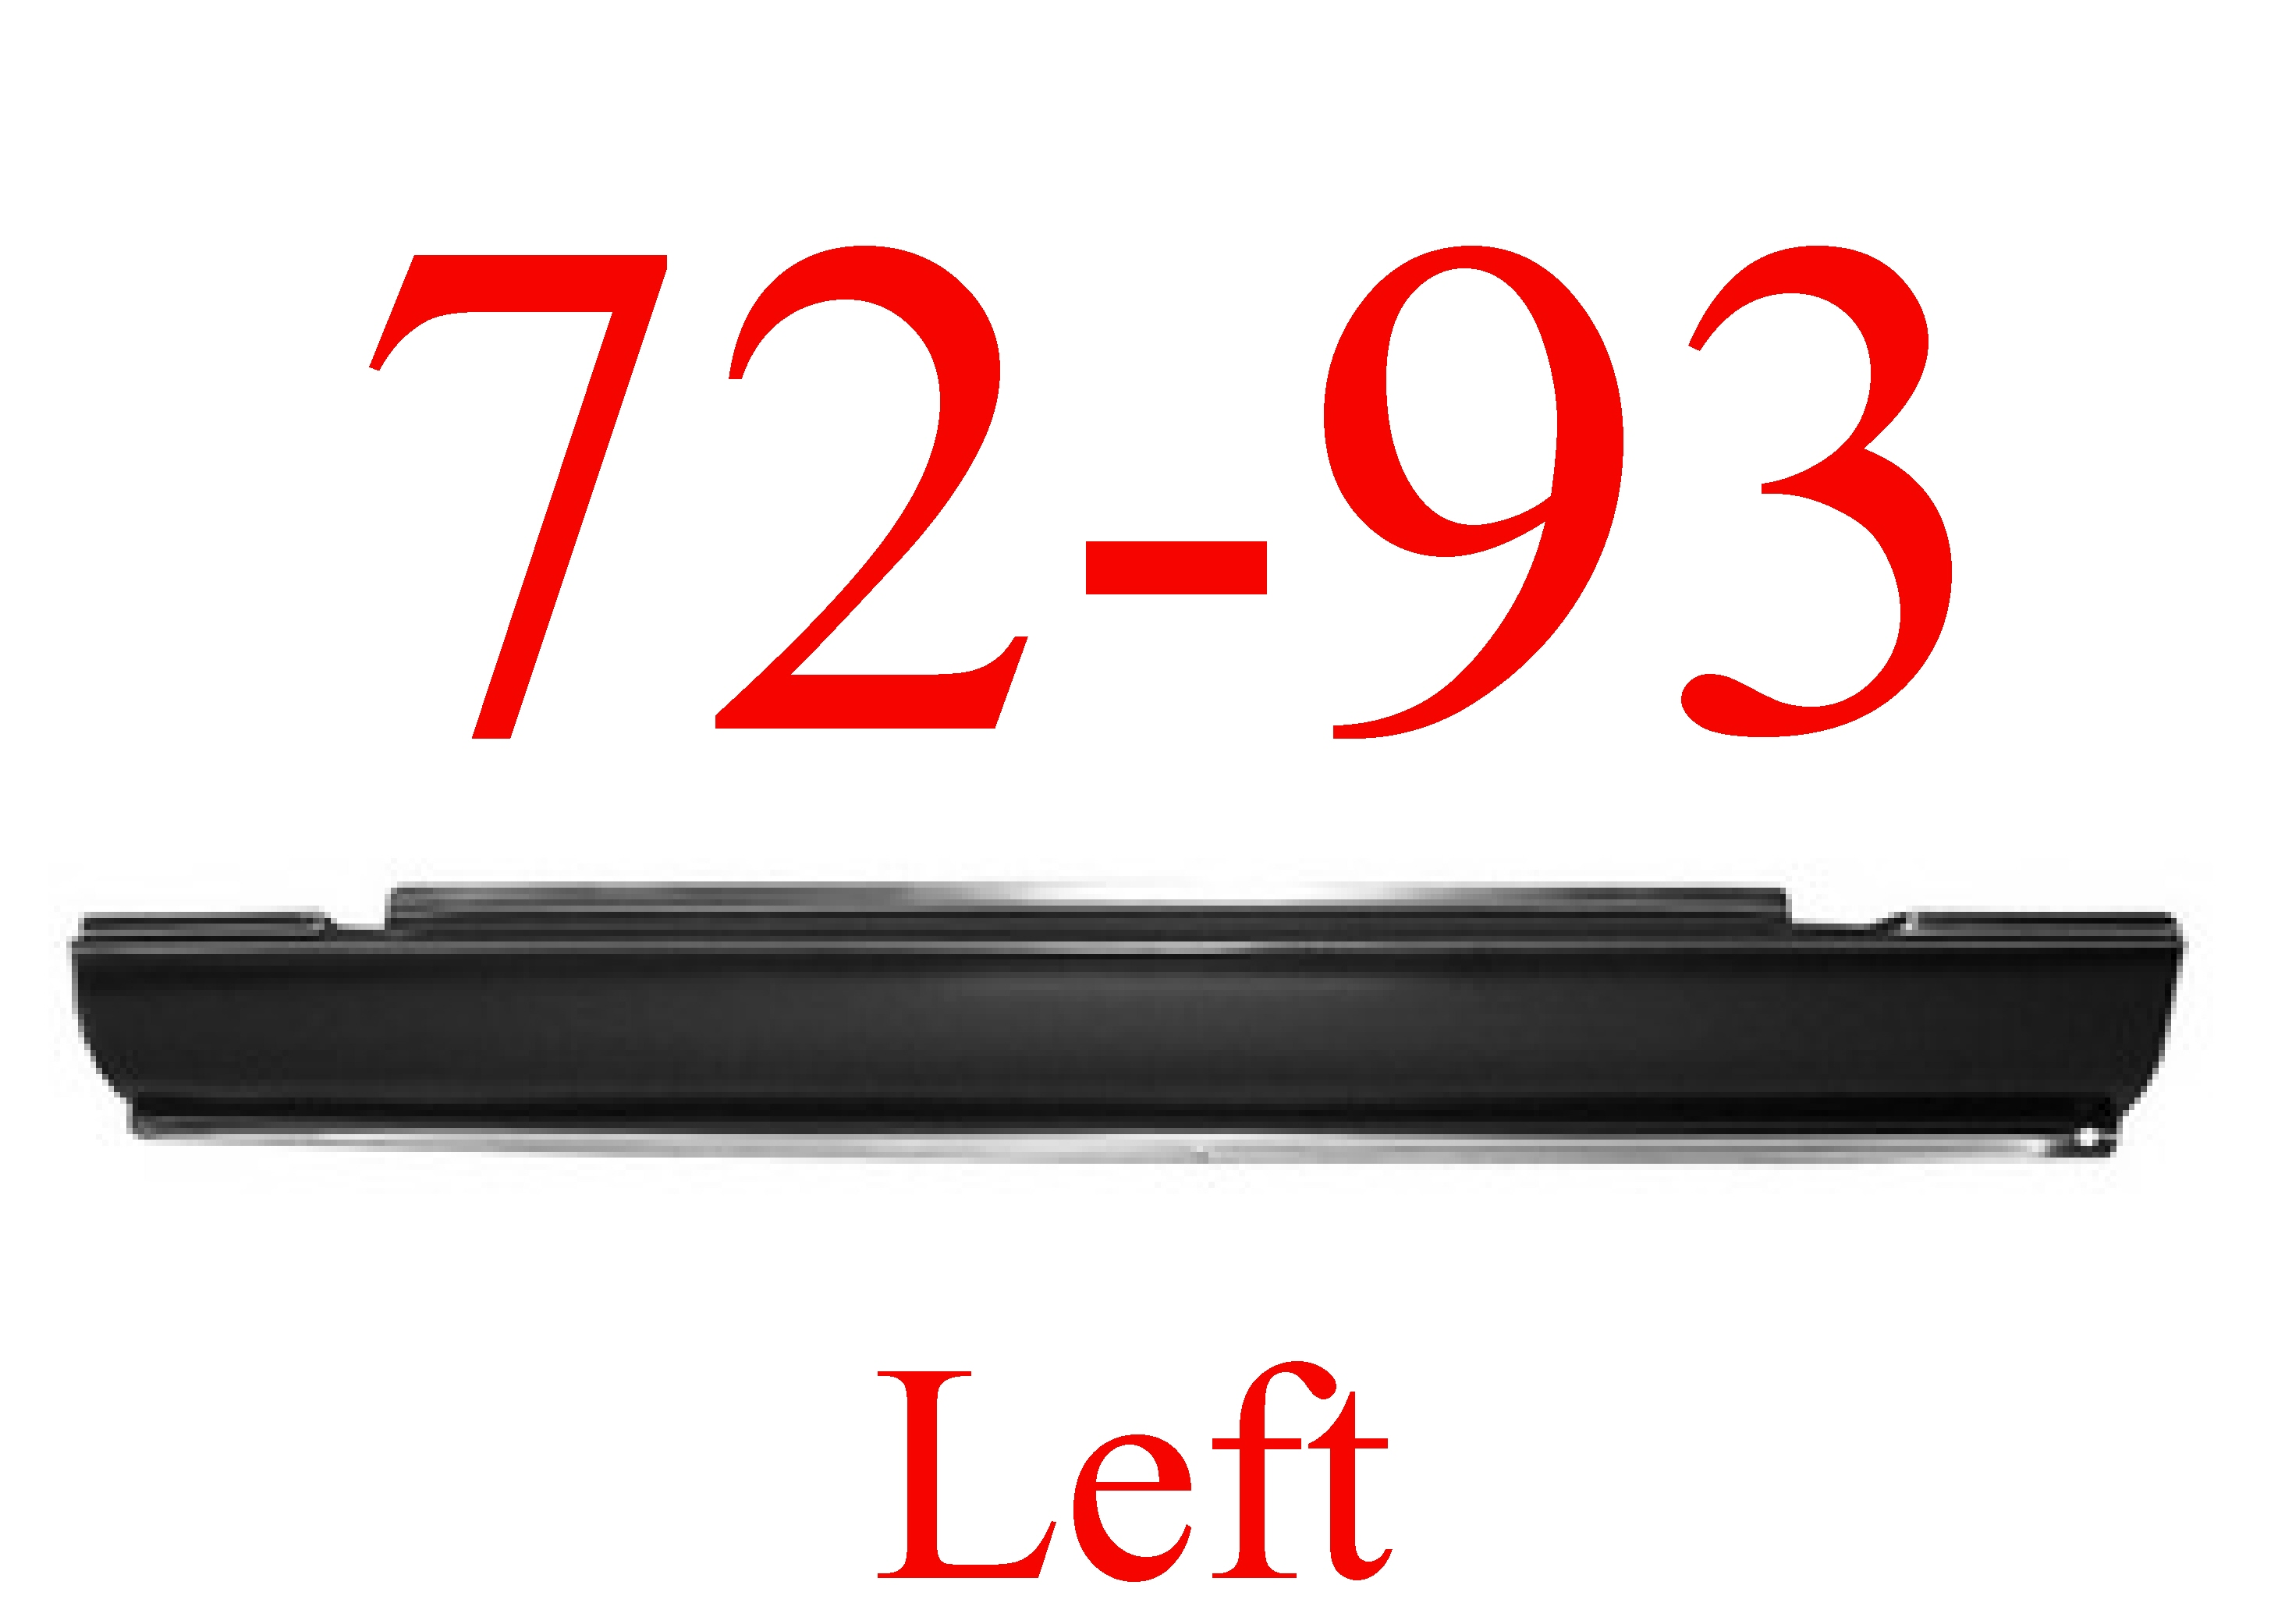 72-93 Dodge Ram LEFT Slip-On Rocker Panel